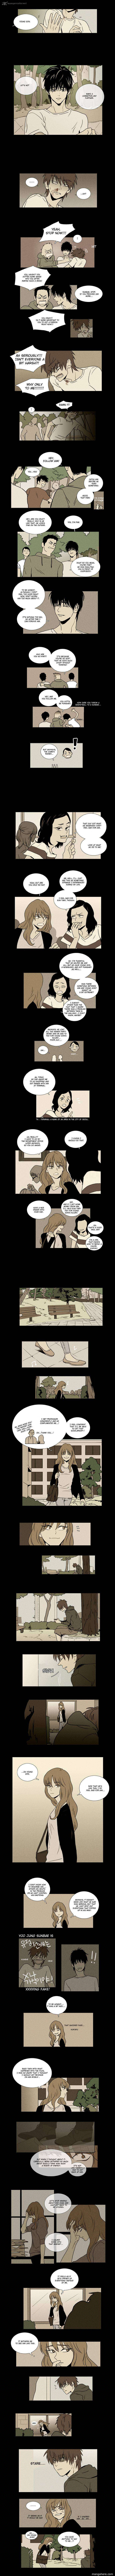 Cheese In The Trap 17 Page 2